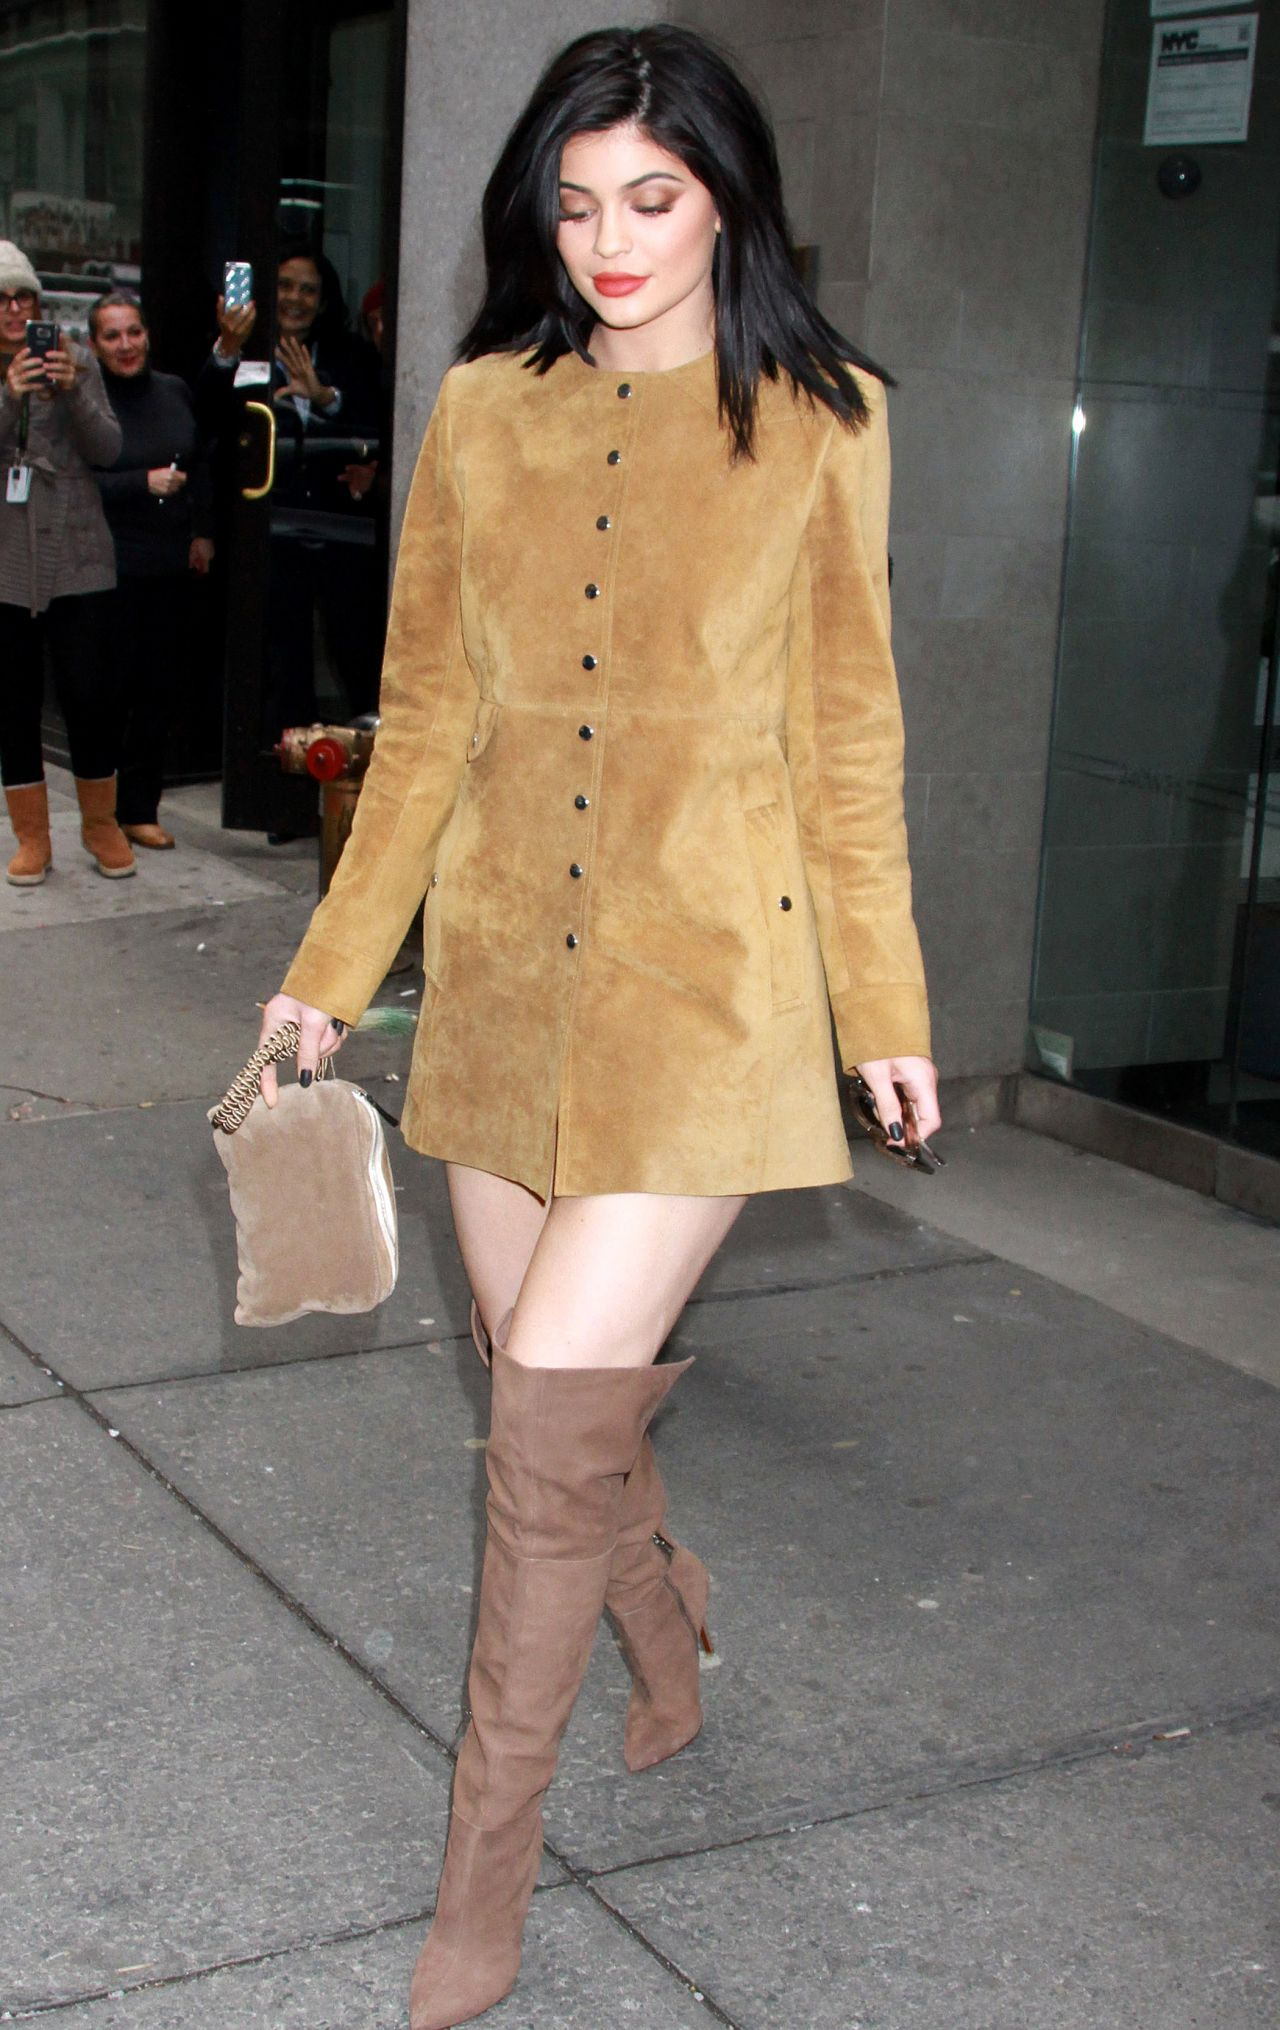 kylie jenner style  leaving her hotel in new york city